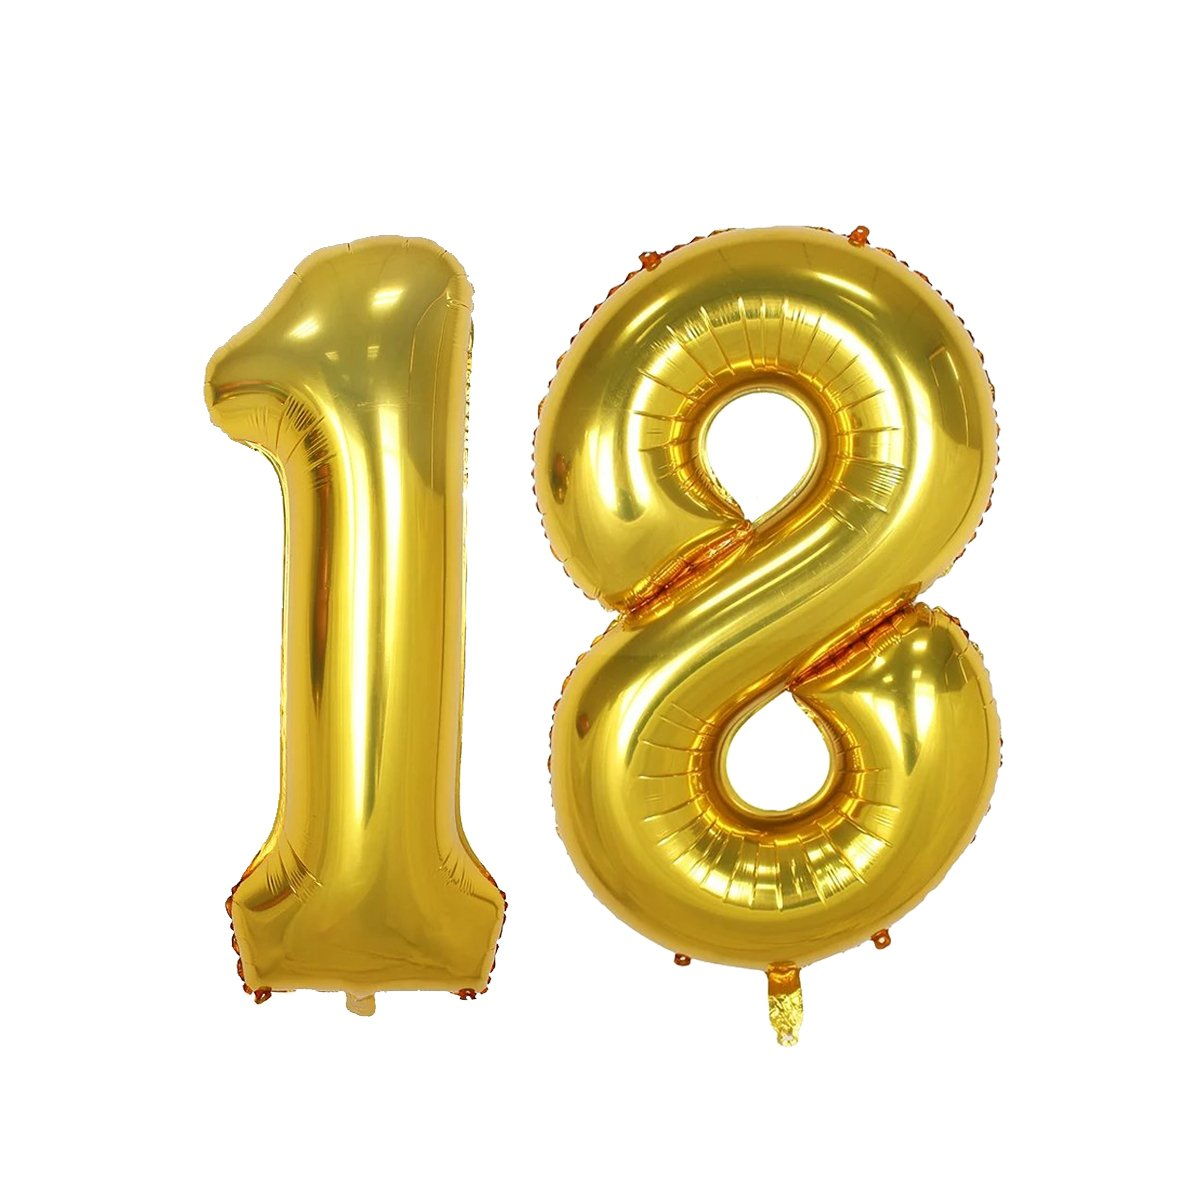 inch gold number balloon for birthday party jpg 1200x1200 silver letter balloons party city